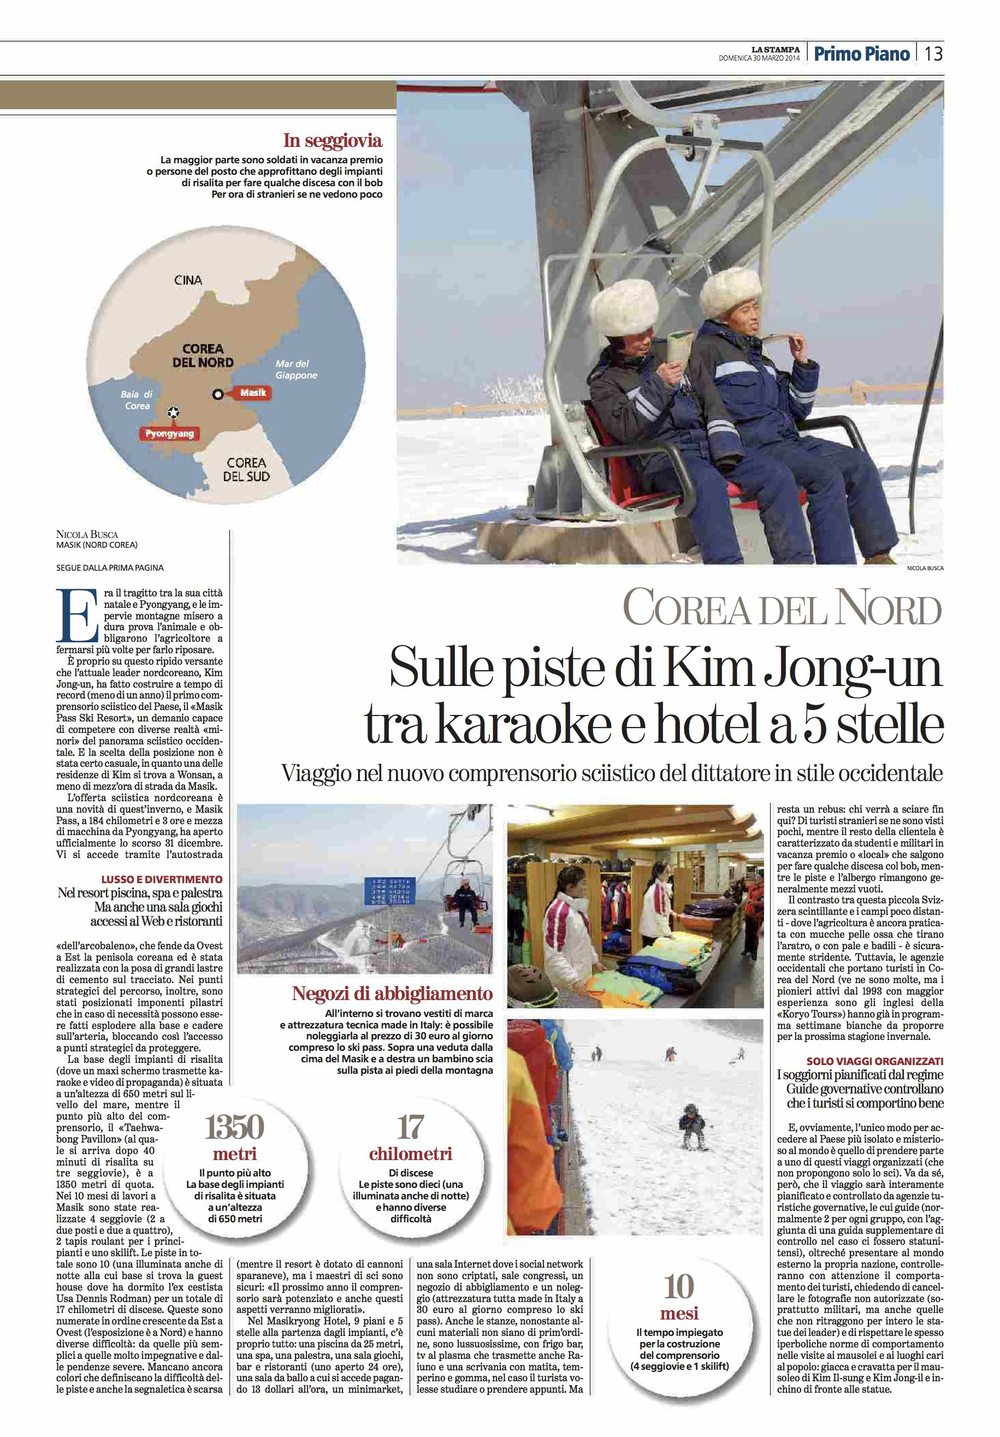 La Stampa (ITA). Ski in North Korea. 03-28-14